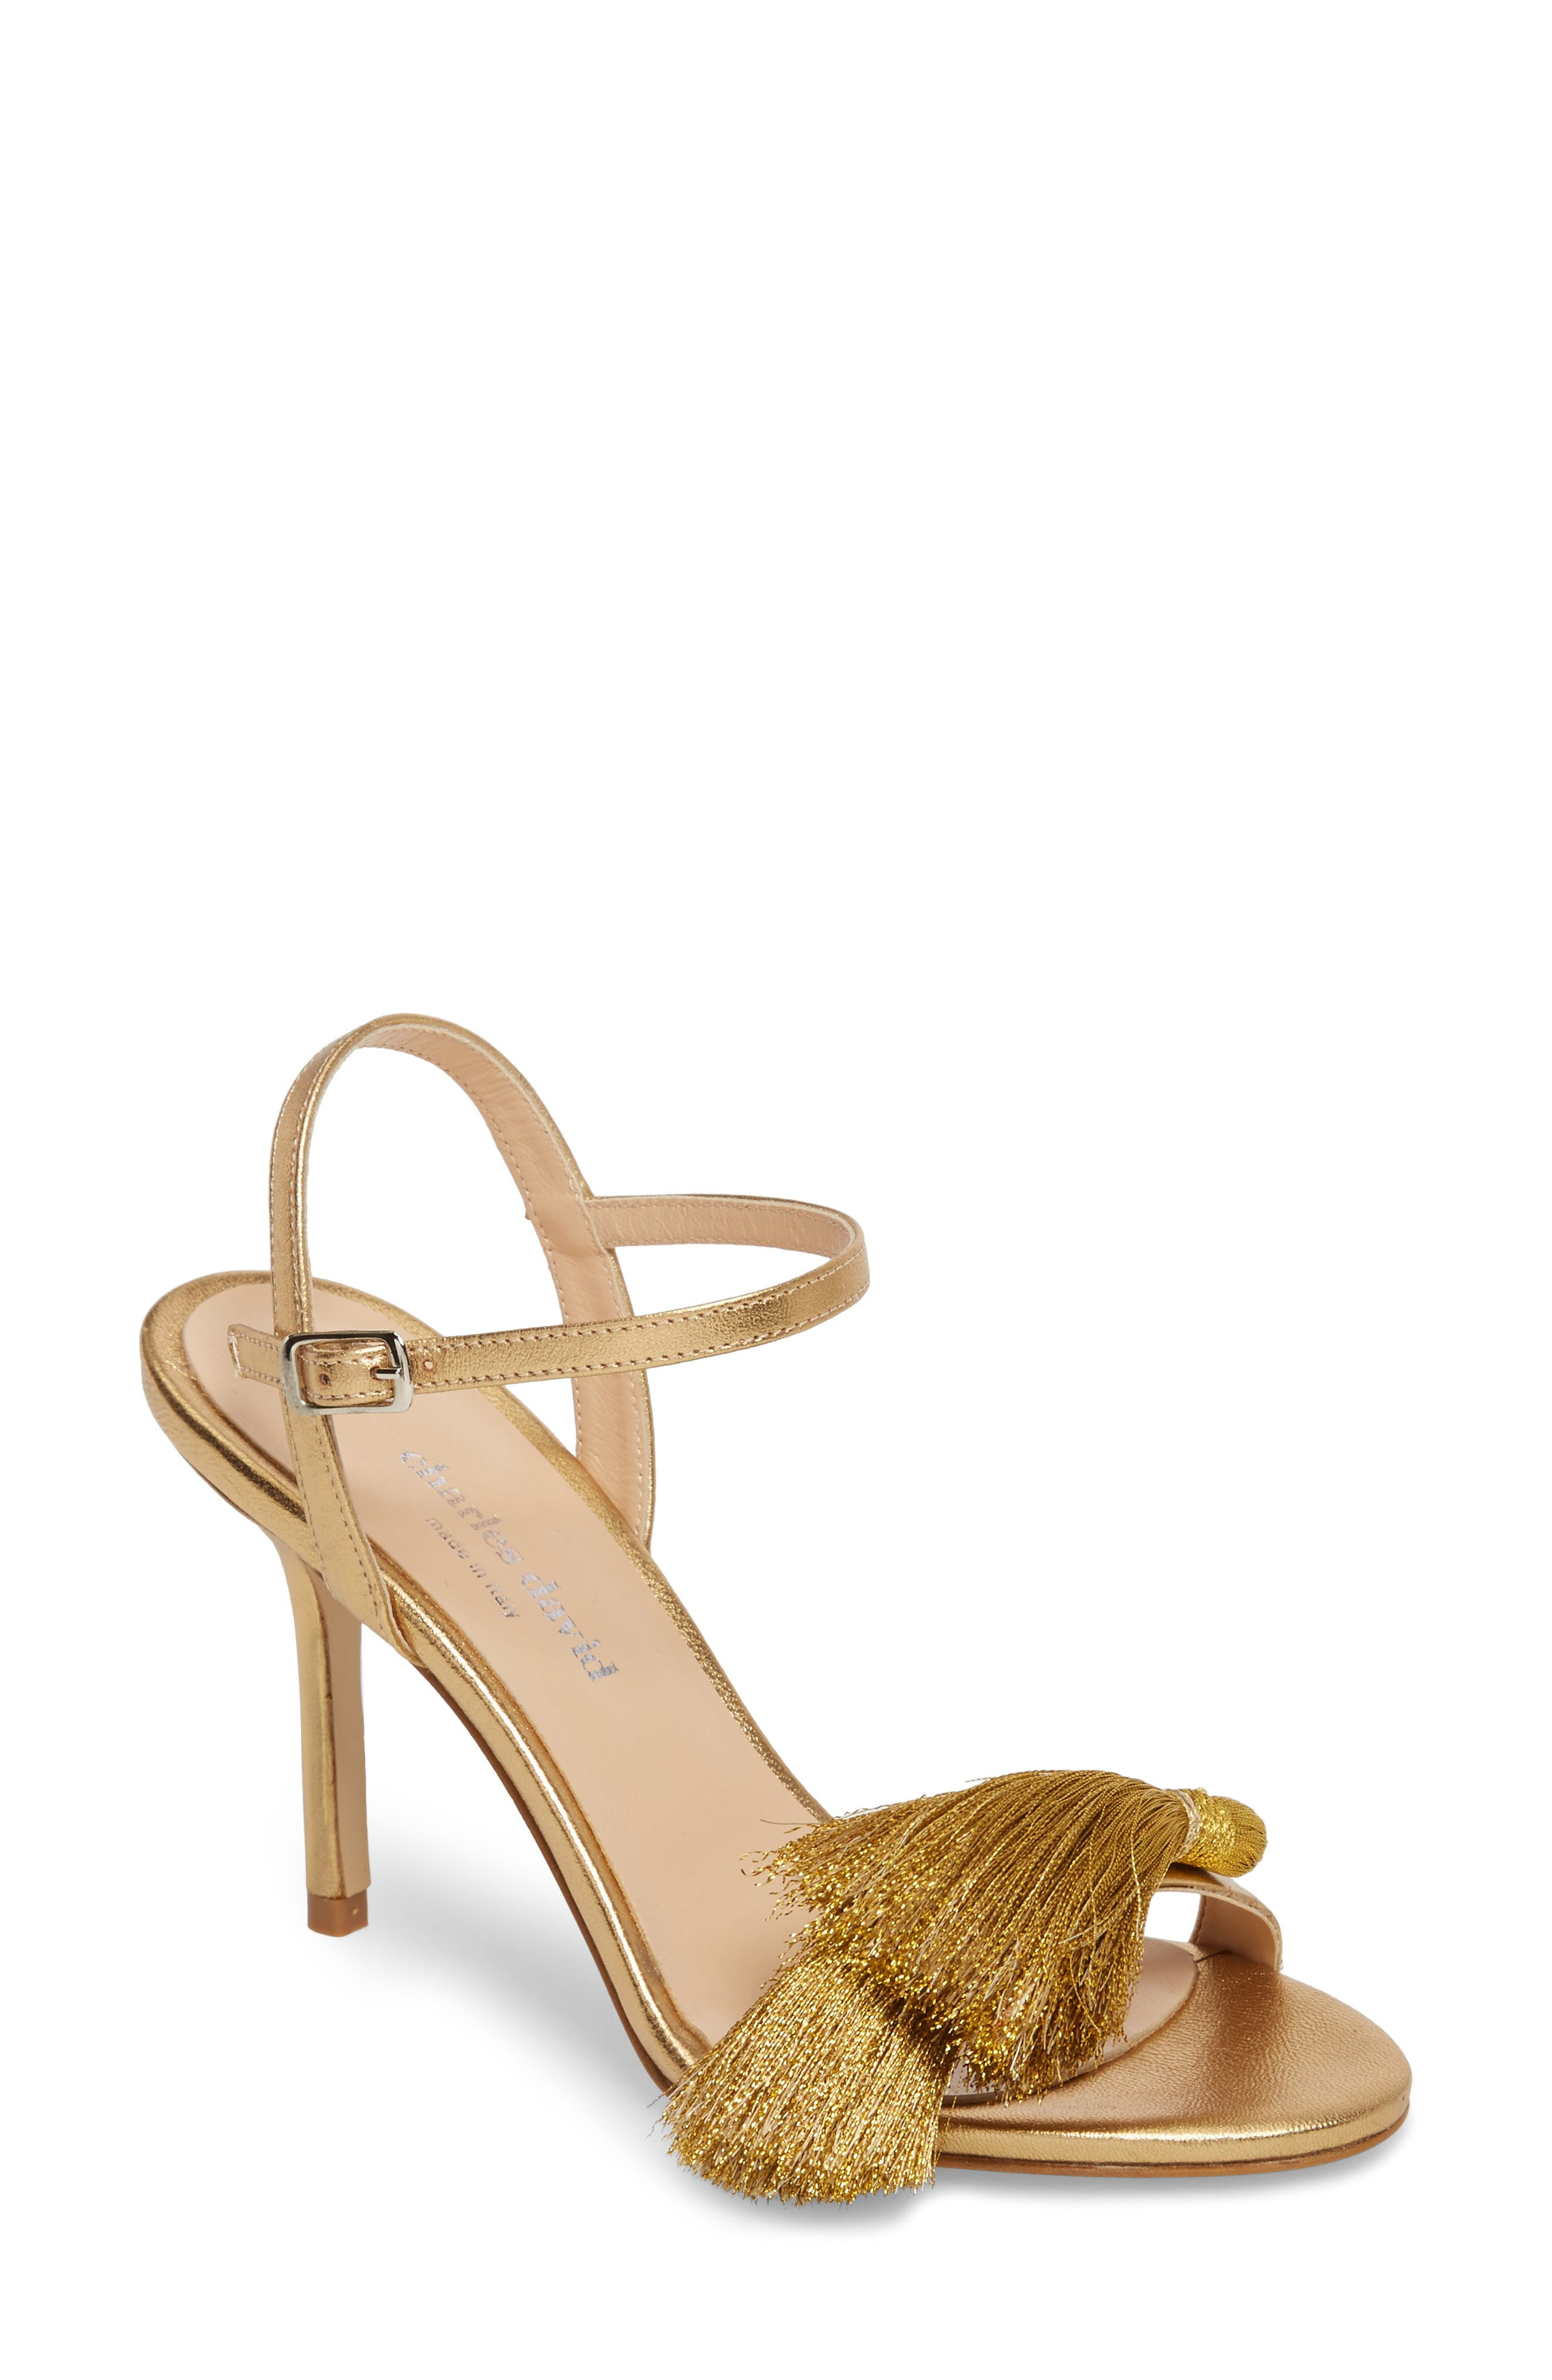 Sassy Tassel Sandal,                             Main thumbnail 1, color,                             GOLD LEATHER